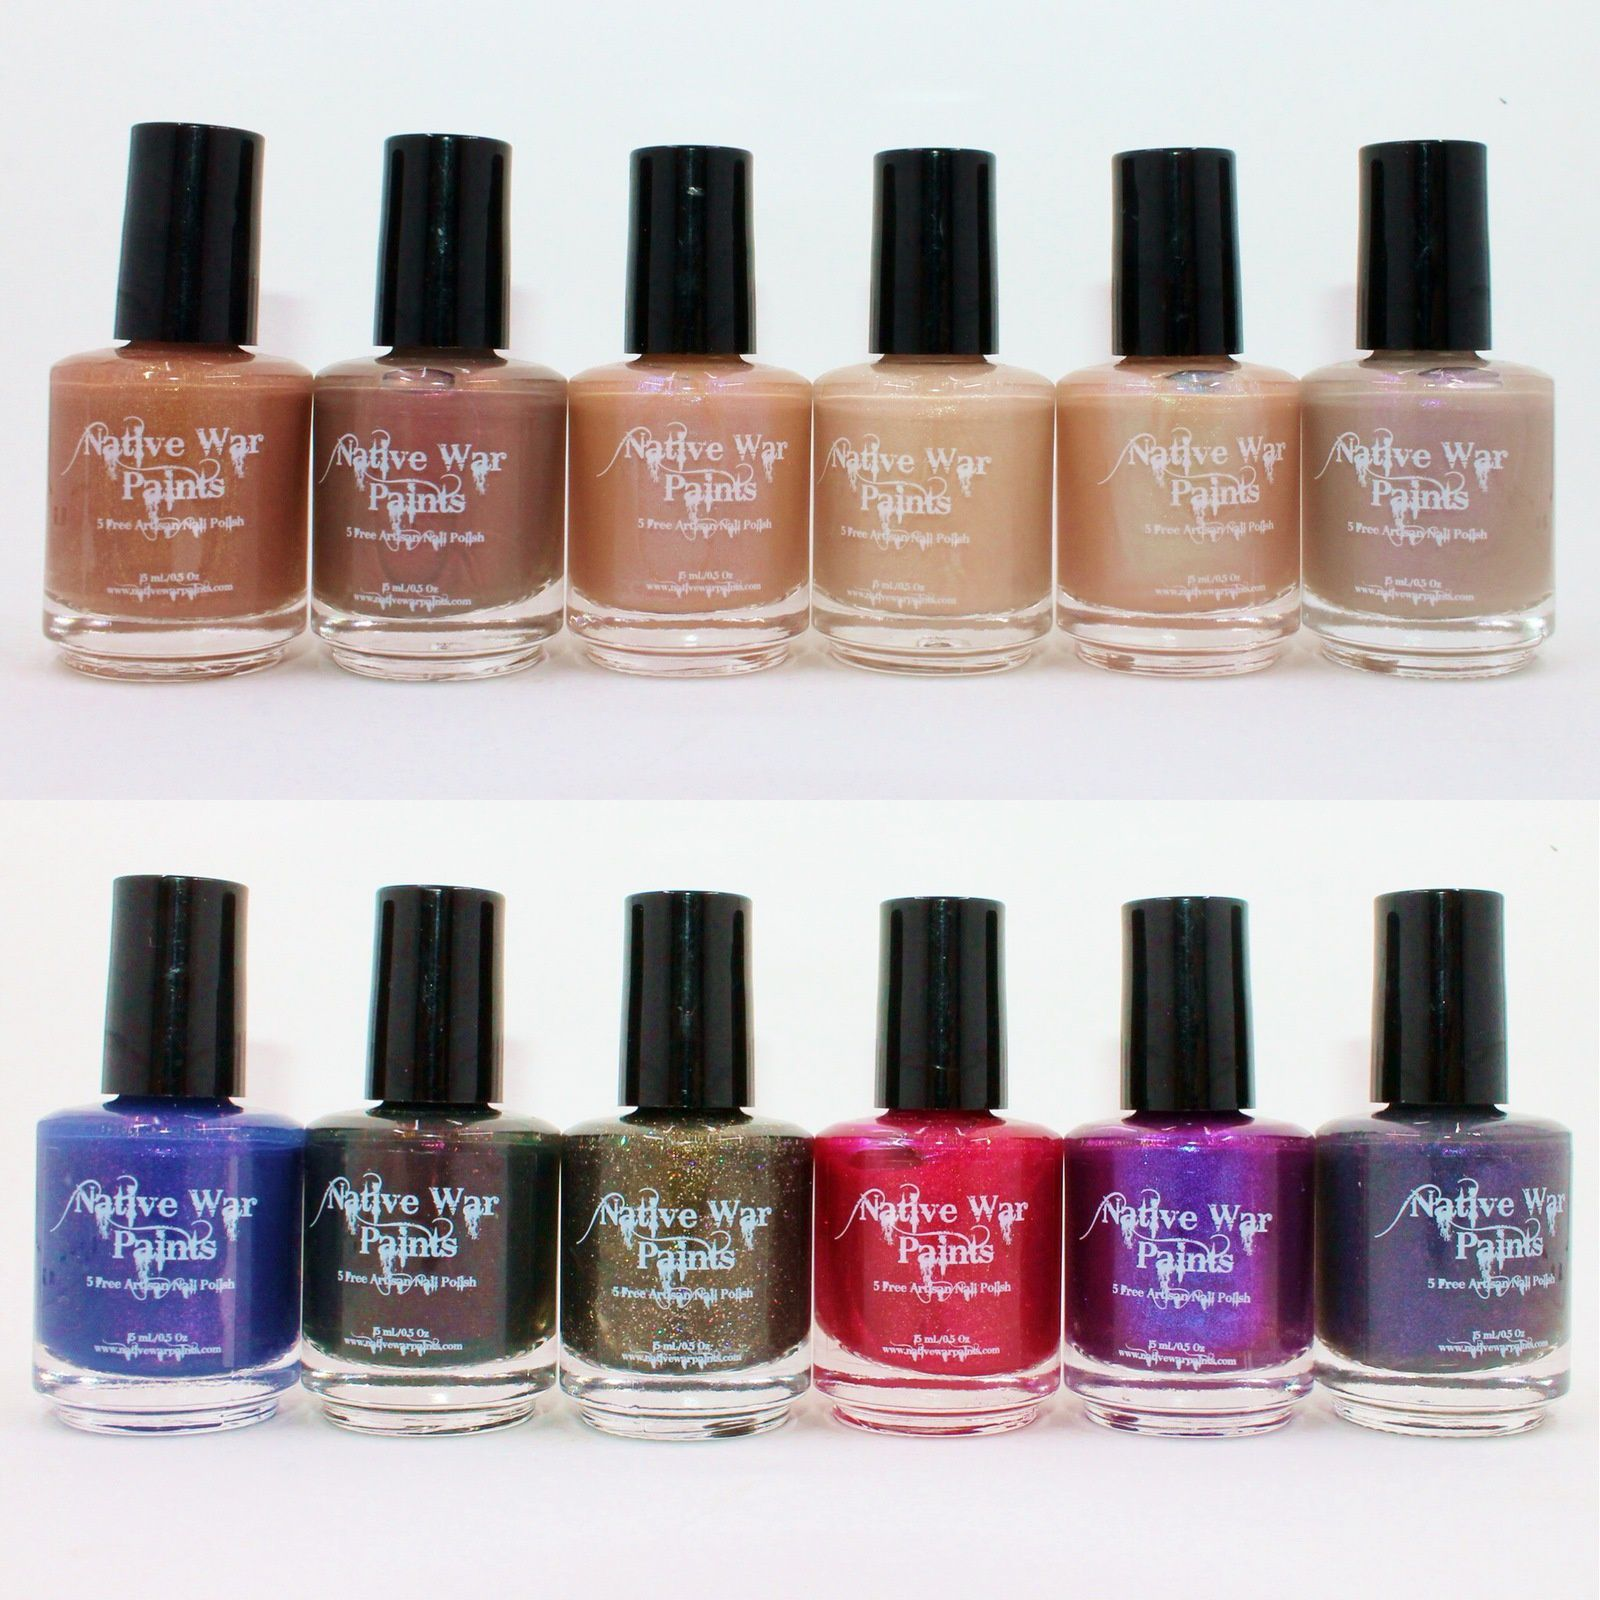 Native war paints Nudist, Exposed, Naked, Full Frontal, Bare, Uncensored, Cerulean Sunset, Rosemary's baby, Black Friday 2017, Pink Posies and Ponies, December 2017, November 2017.